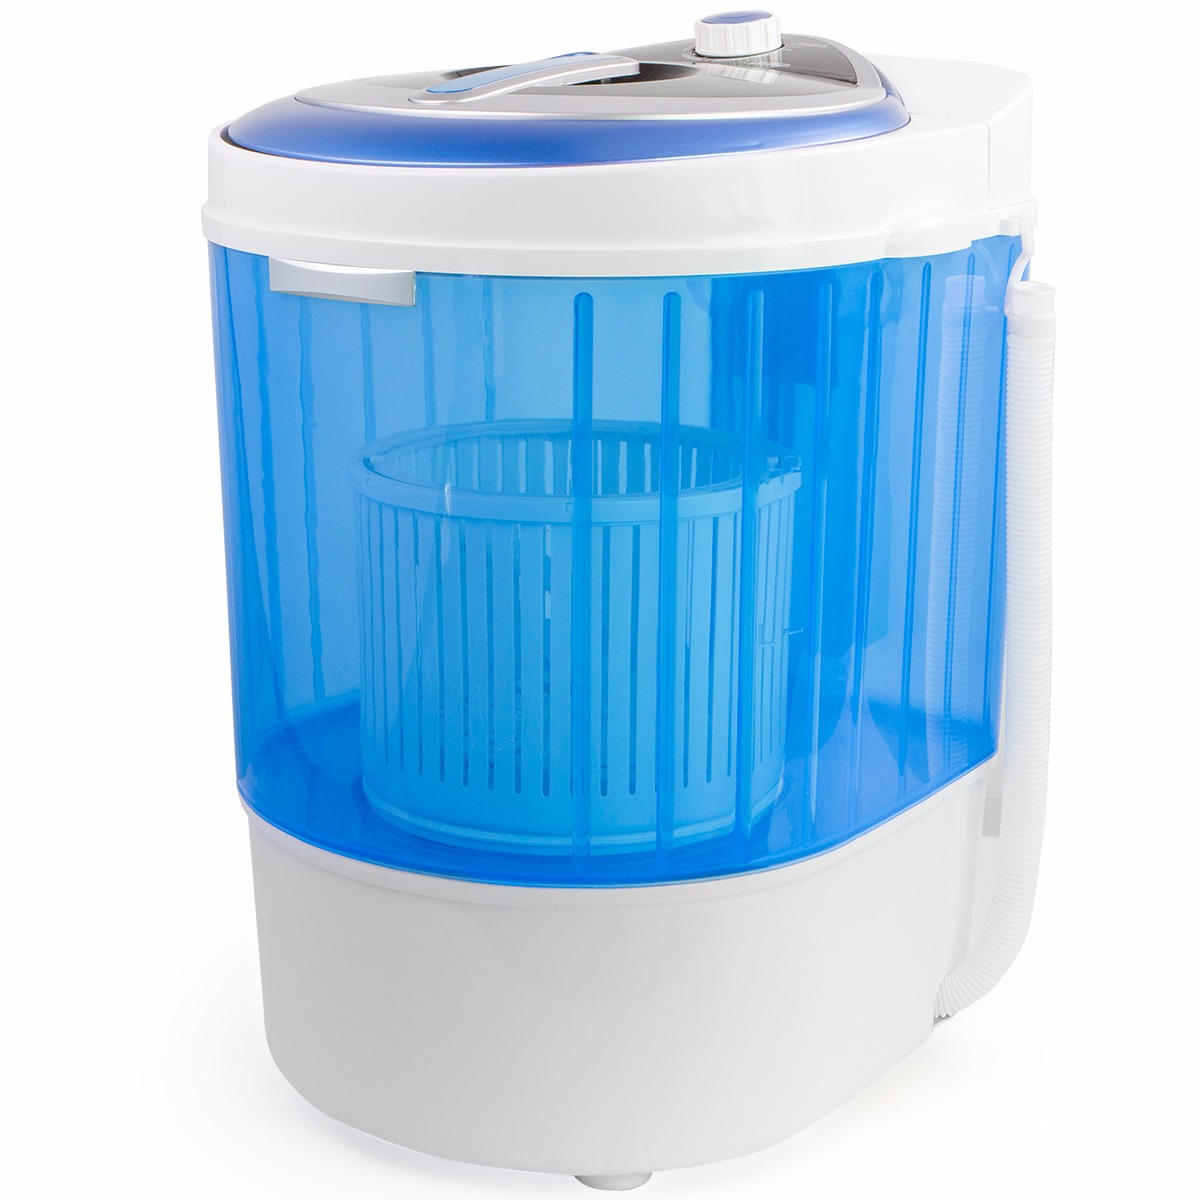 Ensue 110V 250W Electric Portable MINI Washer & Spin Dryer Laundry